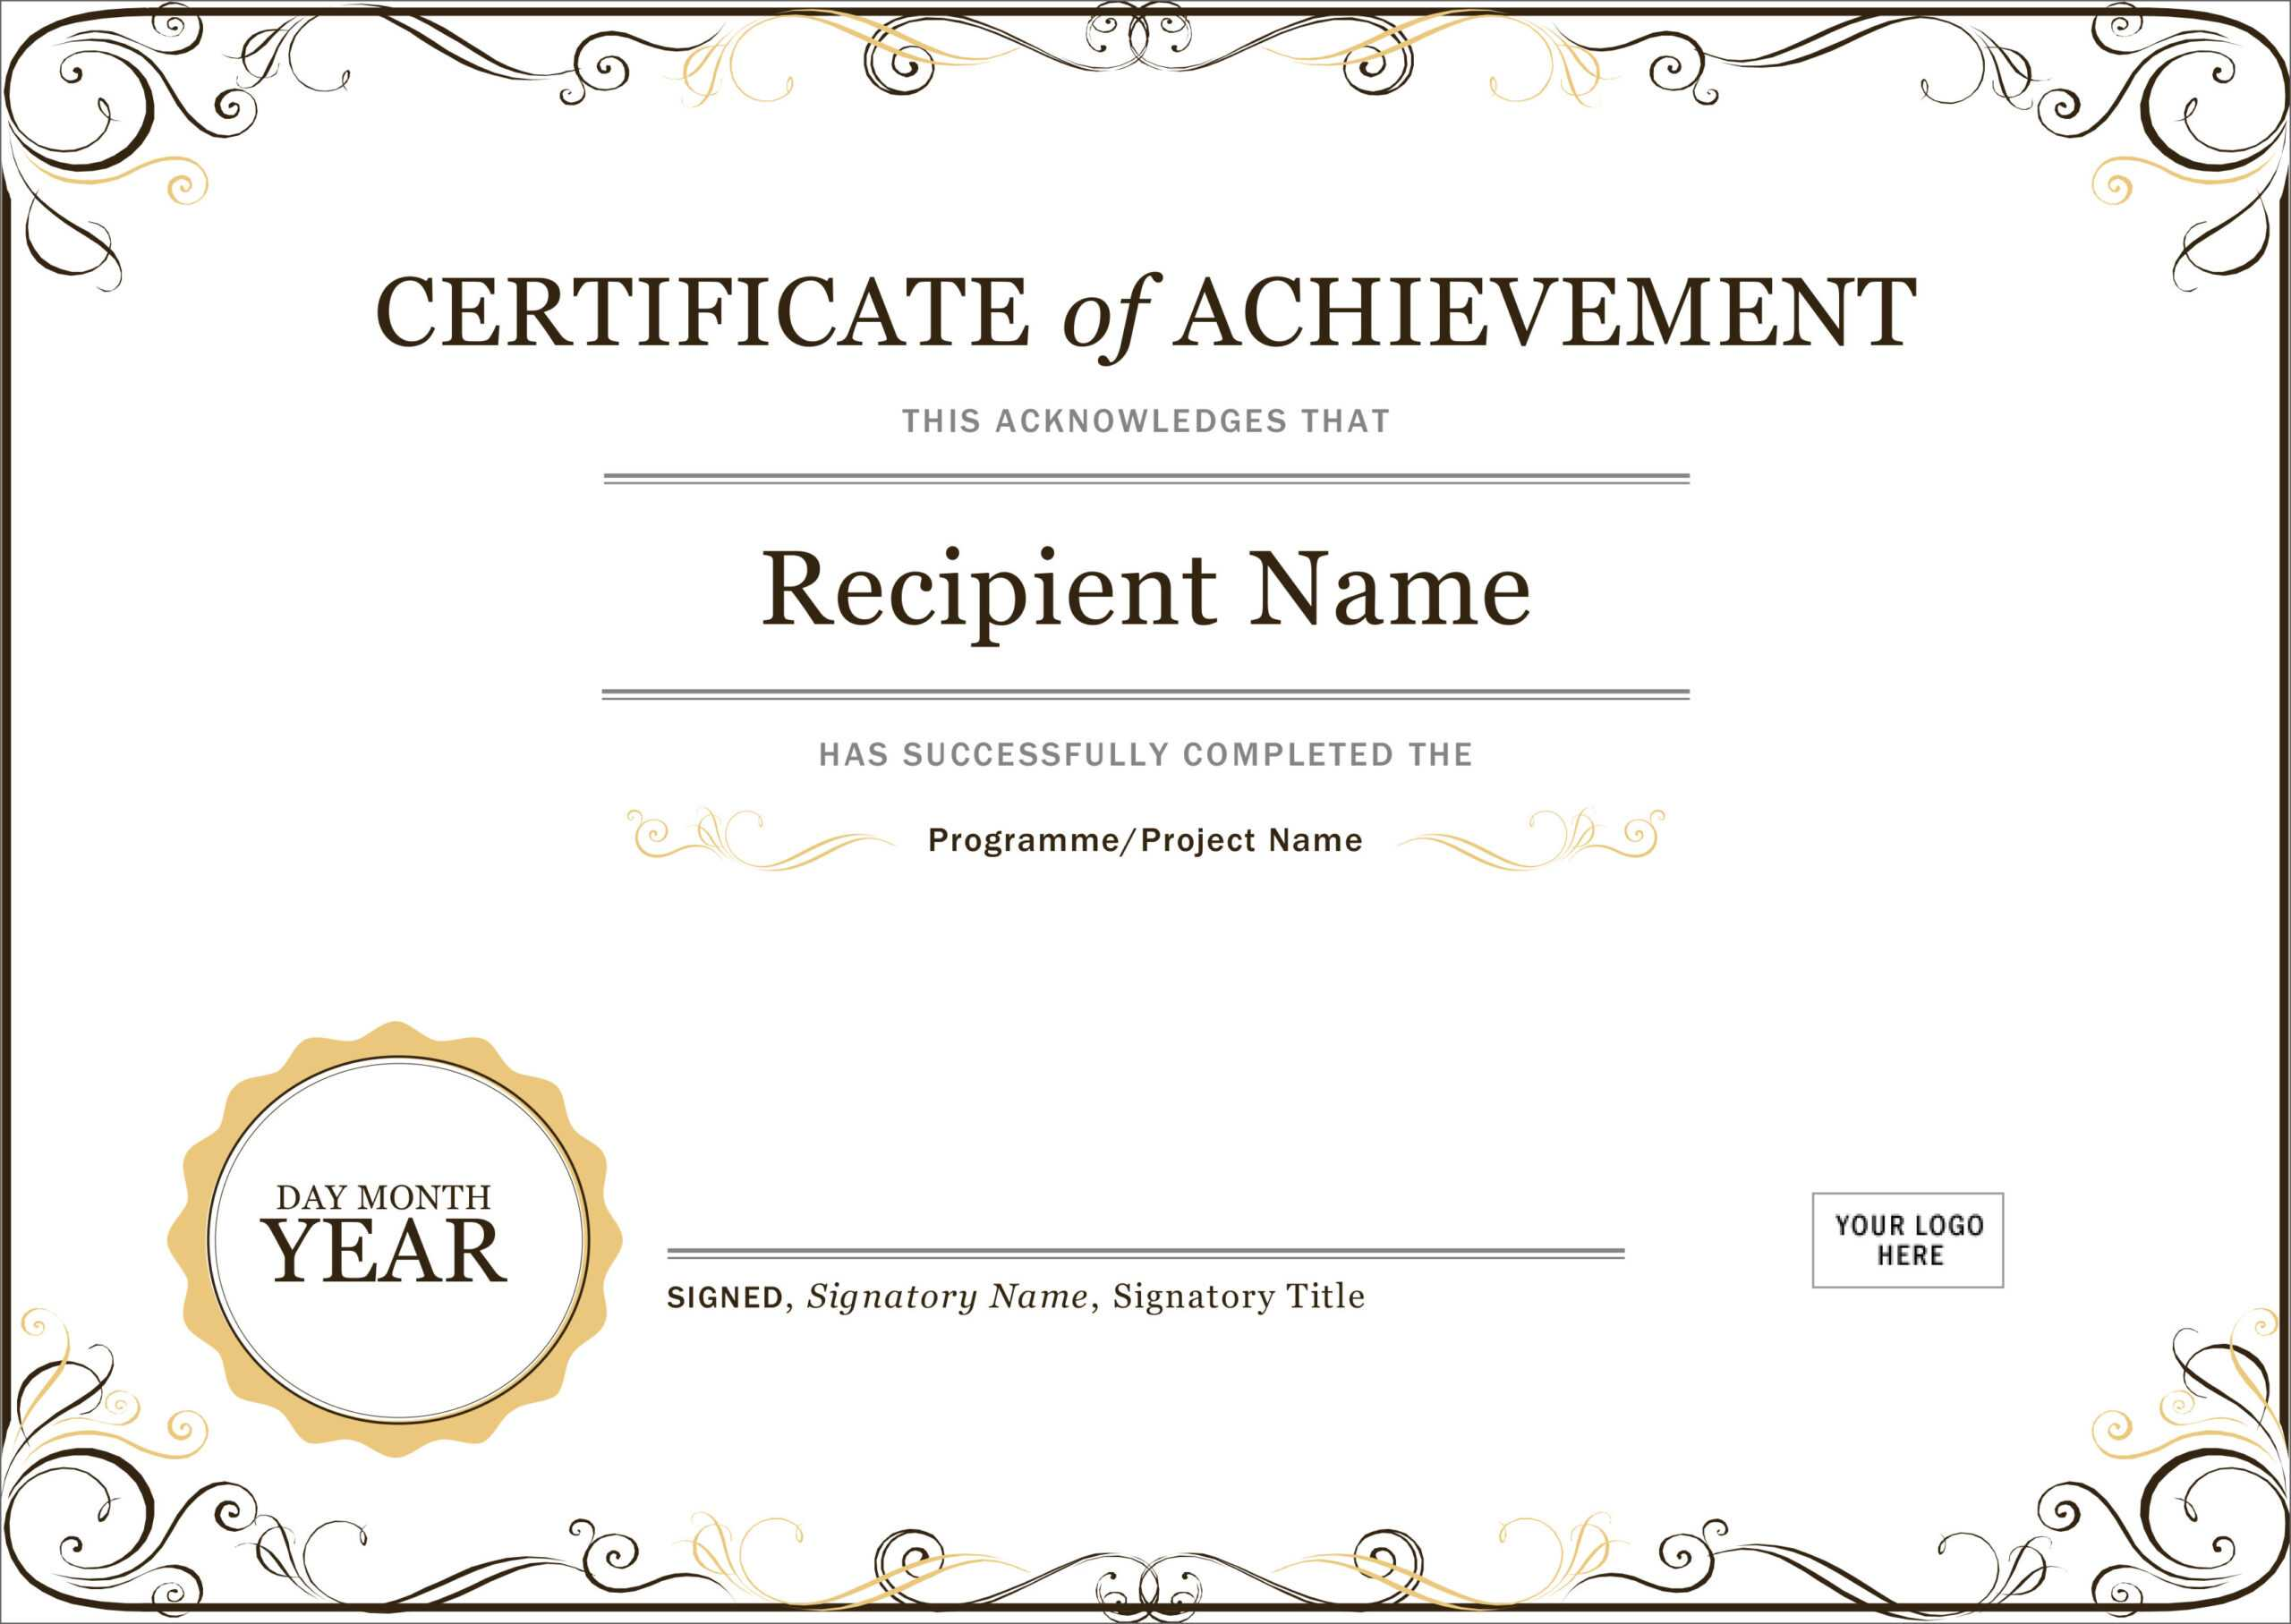 50 Free Creative Blank Certificate Templates In Psd Within Certificate For Years Of Service Template